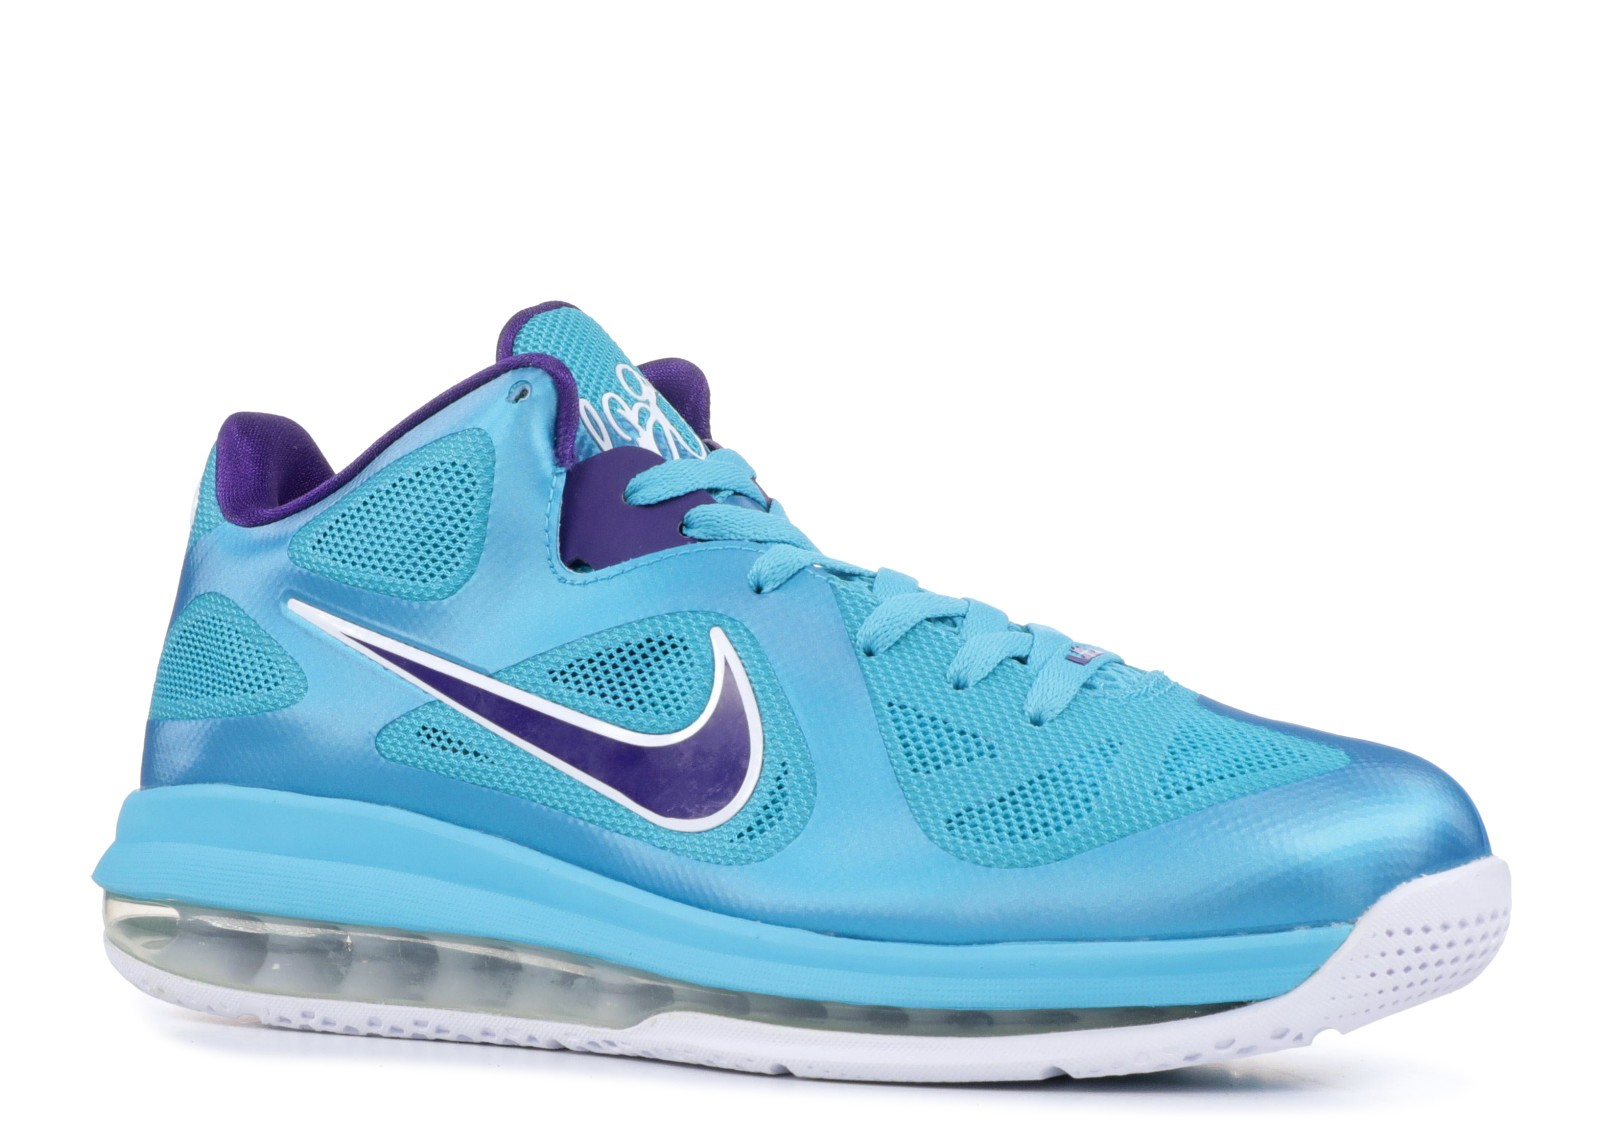 77e86e7ab7cf Lebron 9 Low Summit Lake Hornets Blue Purple Turquoise White Crt 510811-400  ...